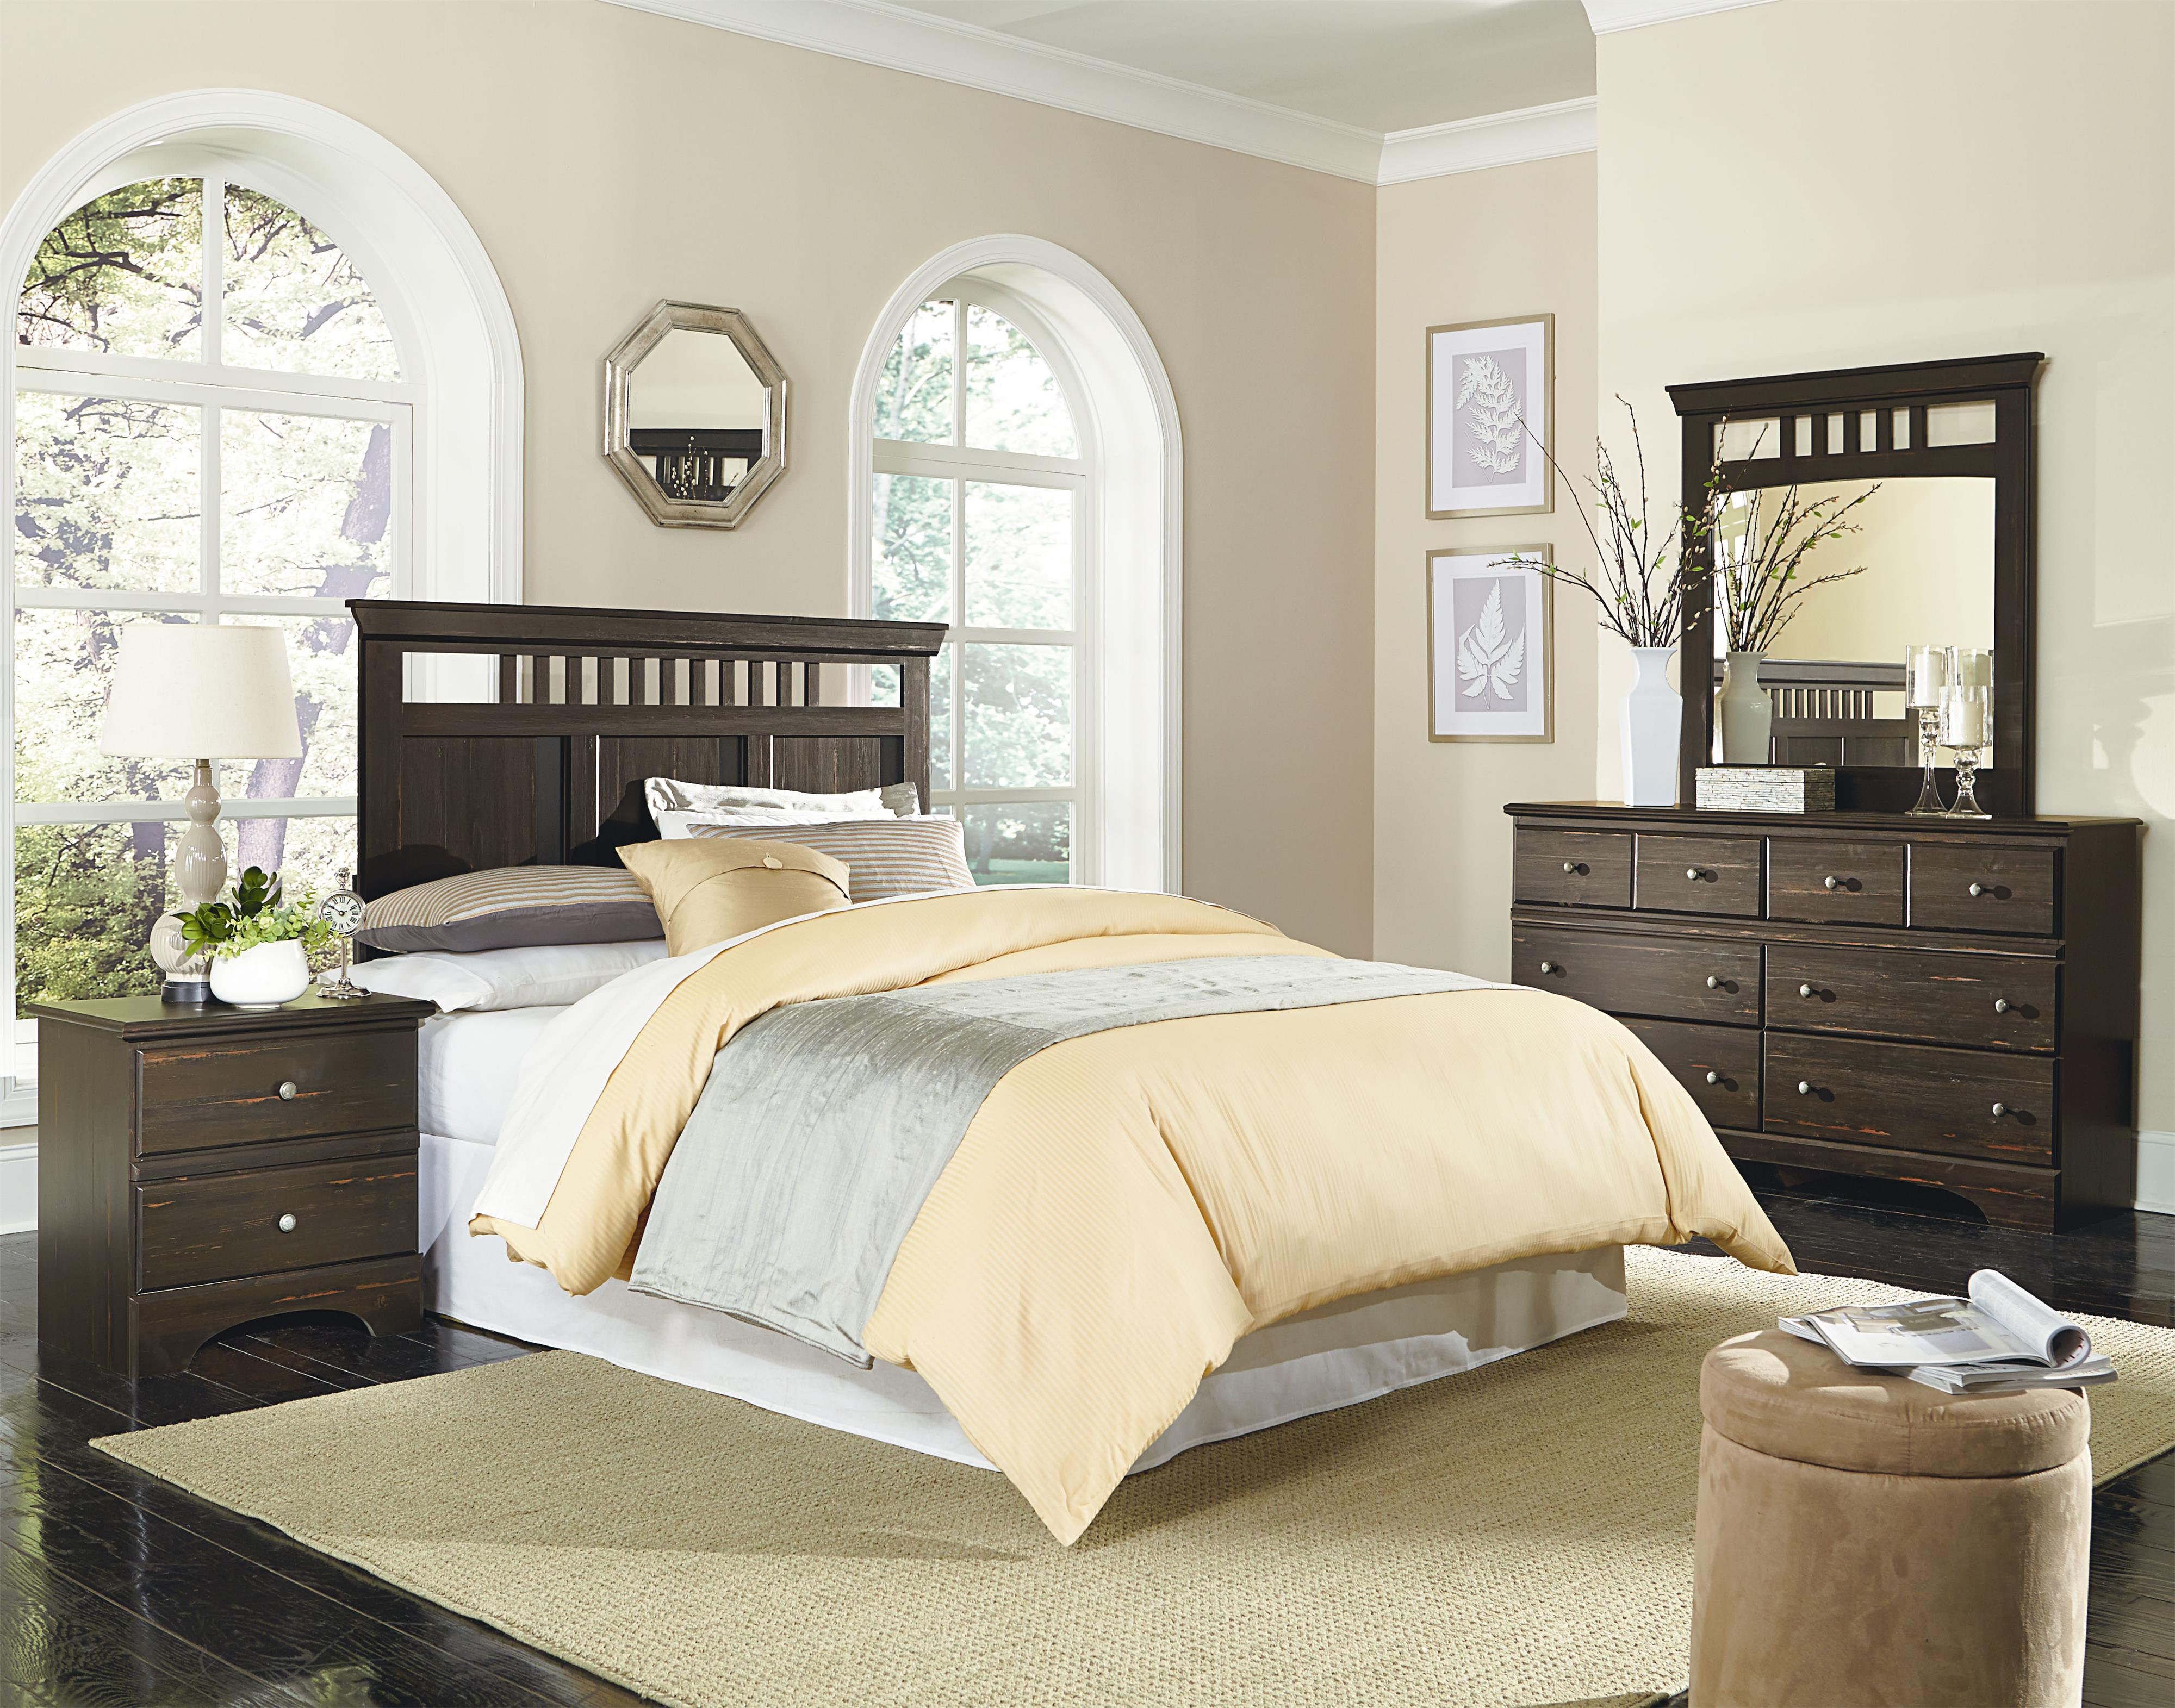 Standard Furniture Hampton Full Queen Bedroom Group Olinde 39 S Furniture Bedroom Group